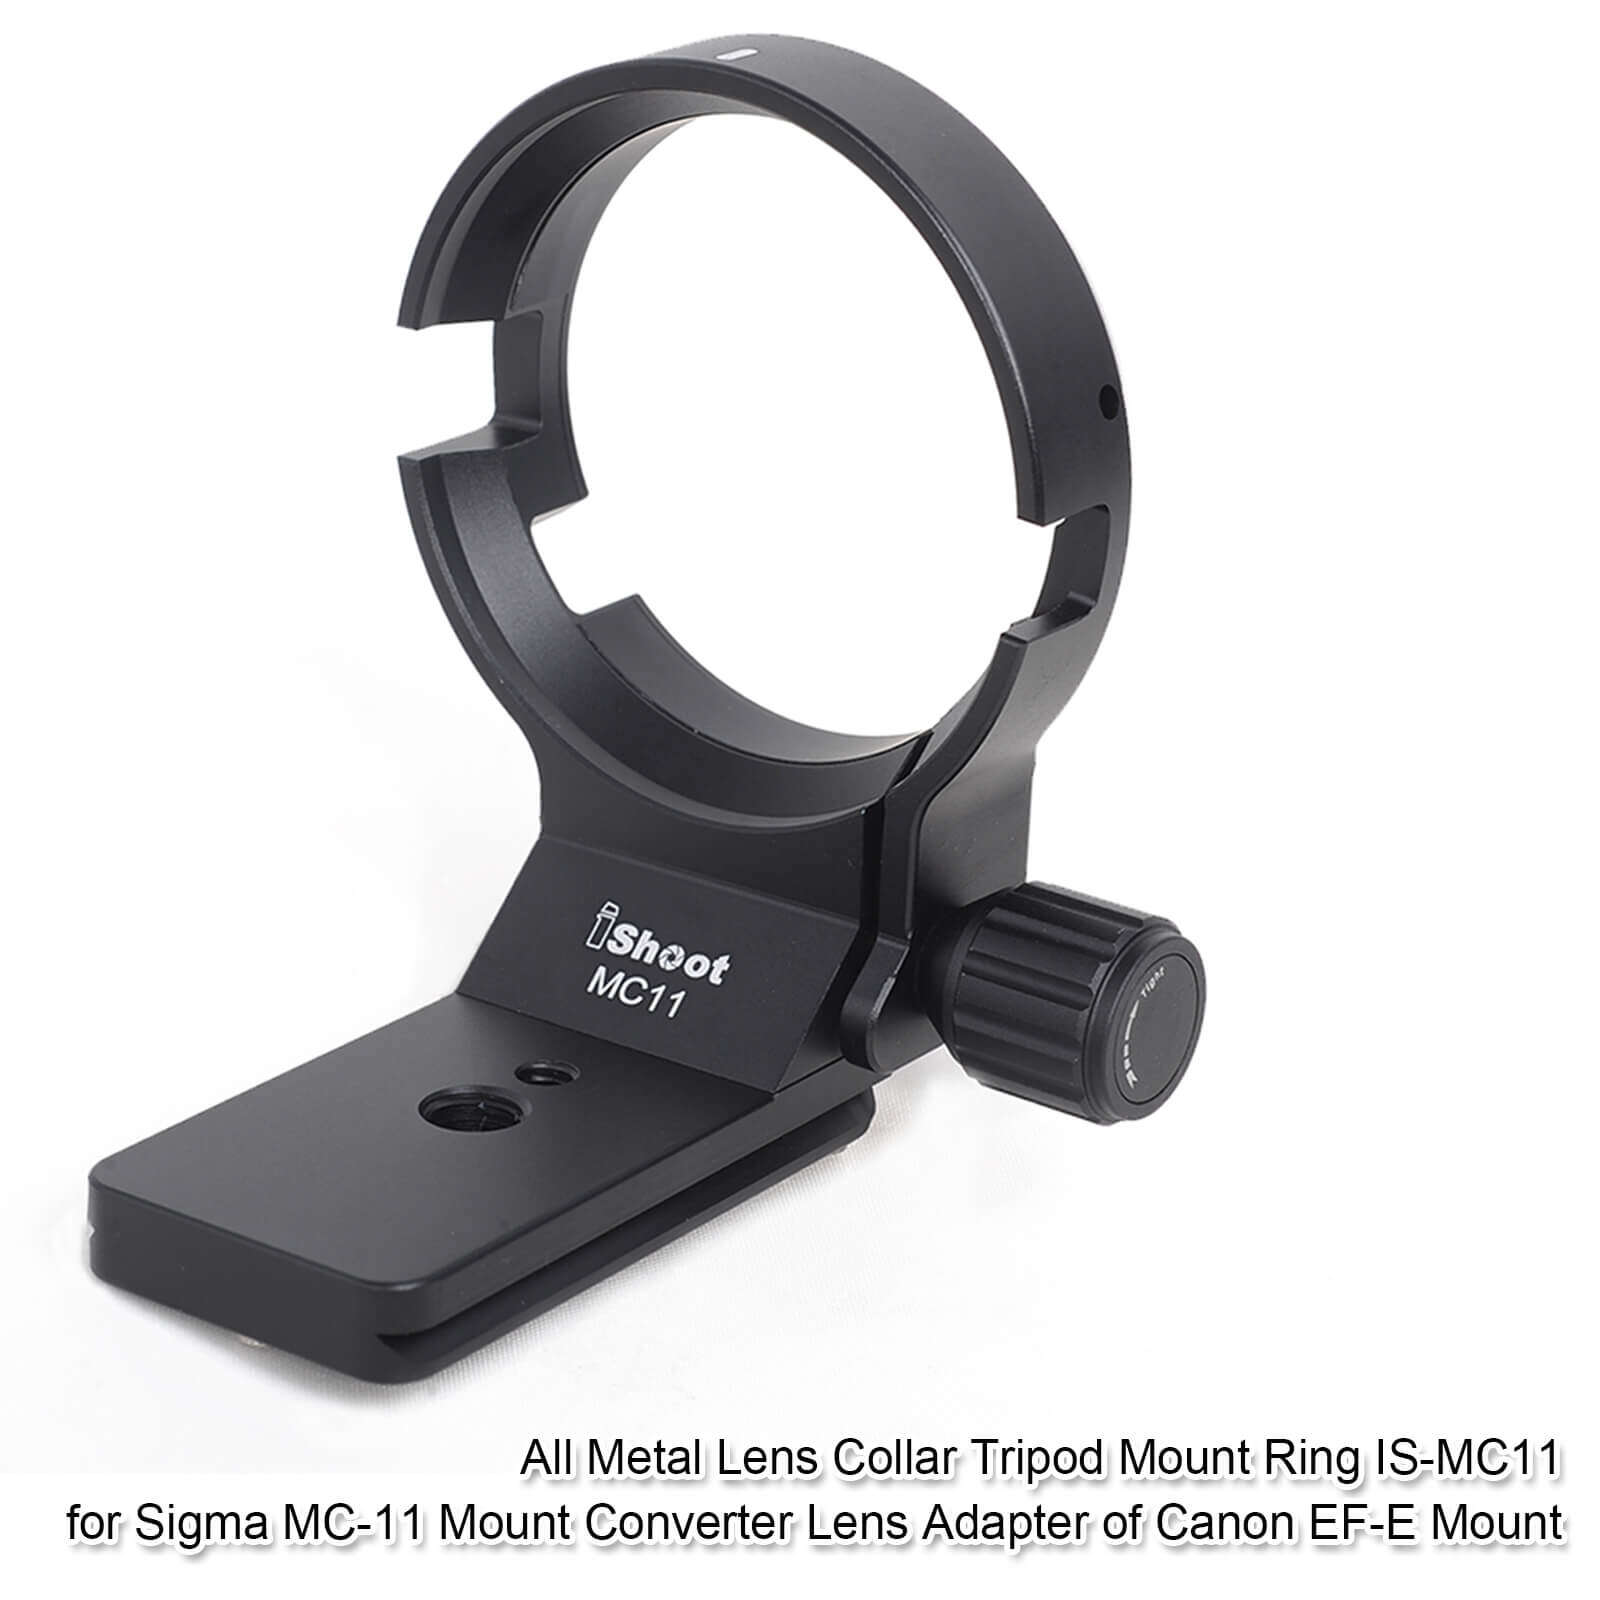 iShoot Tripod Mount Ring Bottom is Arca-Swiss Type Quick Release Plate for Tripod Ball Head CNC Machined Camera 61.5mm Lens Collar for Sigma MC-11 Mount Converter Lens Adapter of Canon EF-E Mount